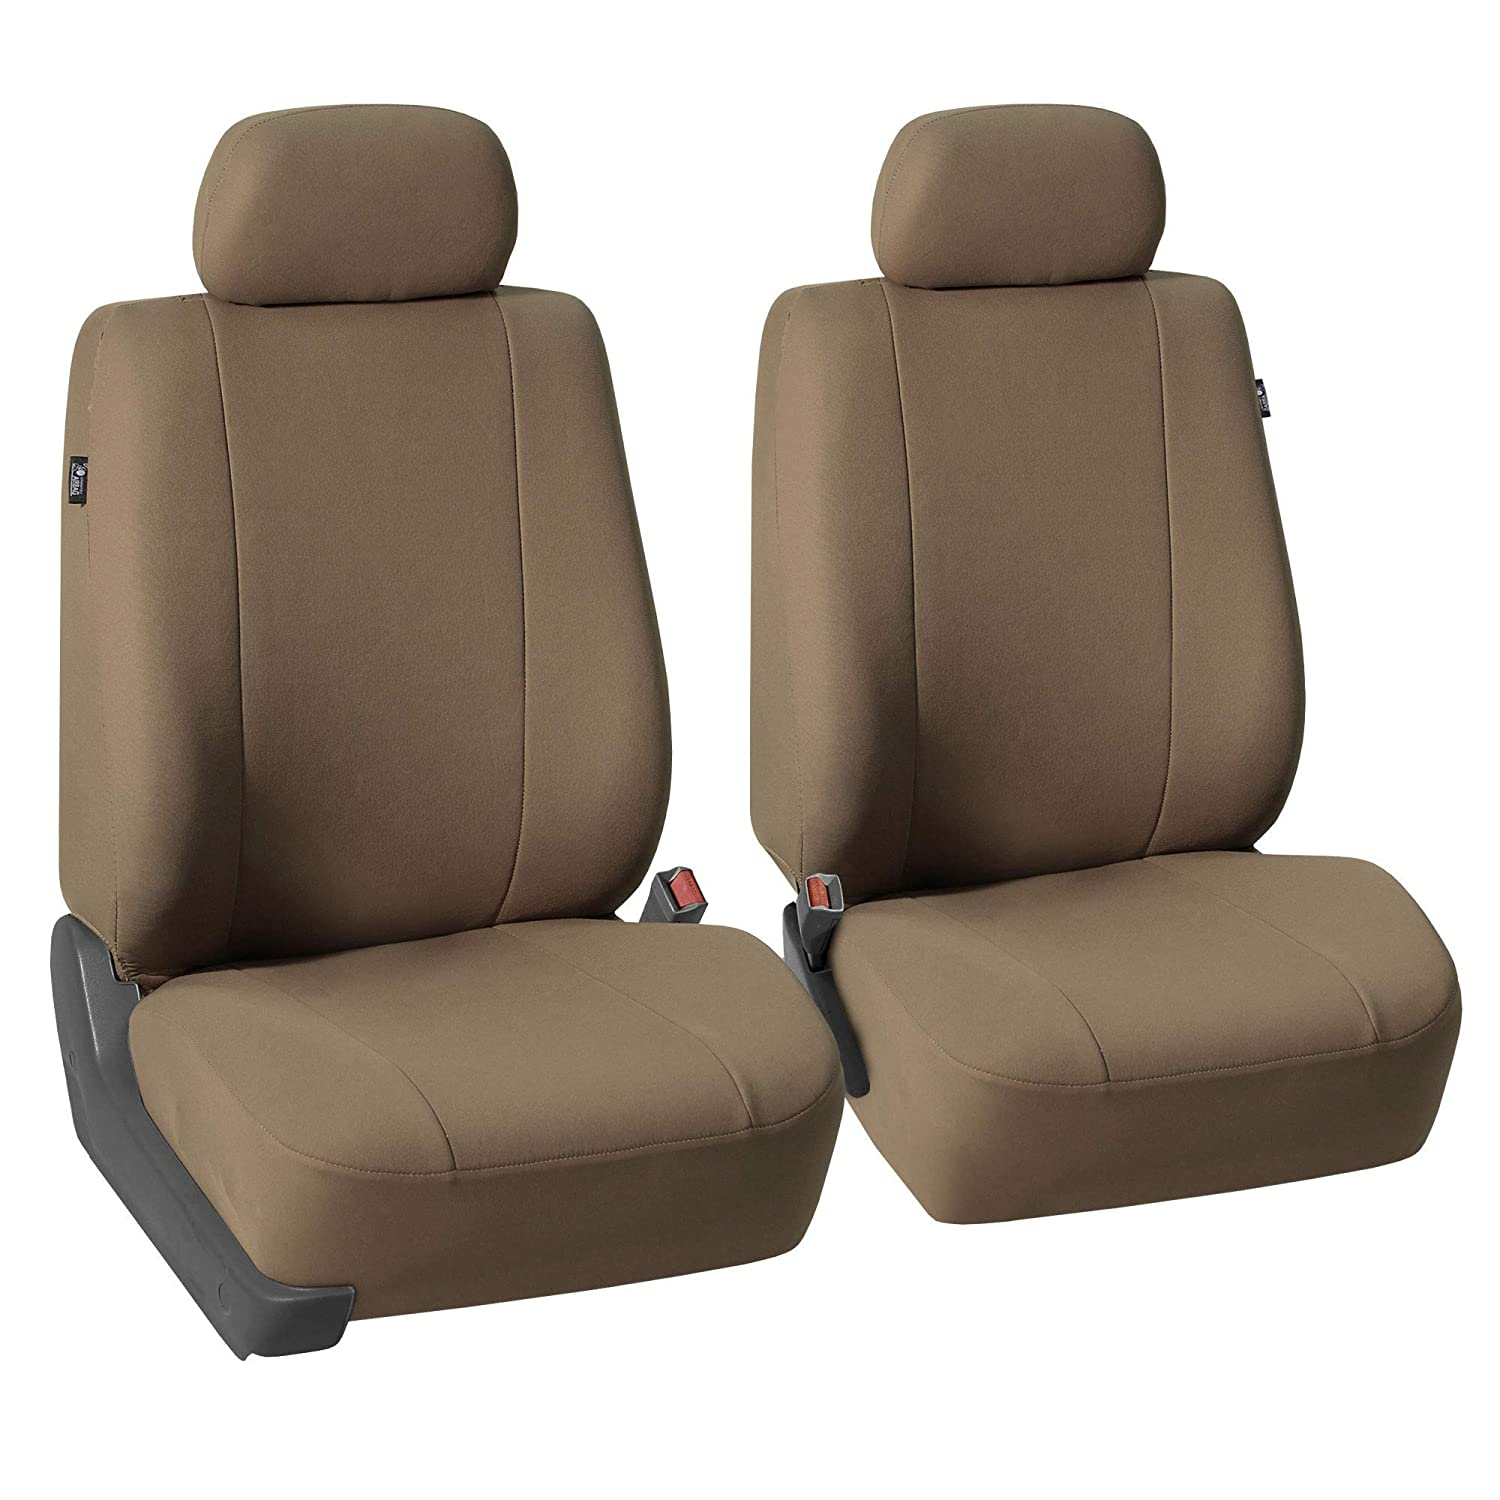 FH Group FB052102 Multifunctional Flat Cloth Bucket Front Car Seat Covers Taupe Color, (Airbag Compatible) w. FH1002 Non-Slip Dash Grip Pad- Fit Most Car, Truck, SUV, or Van